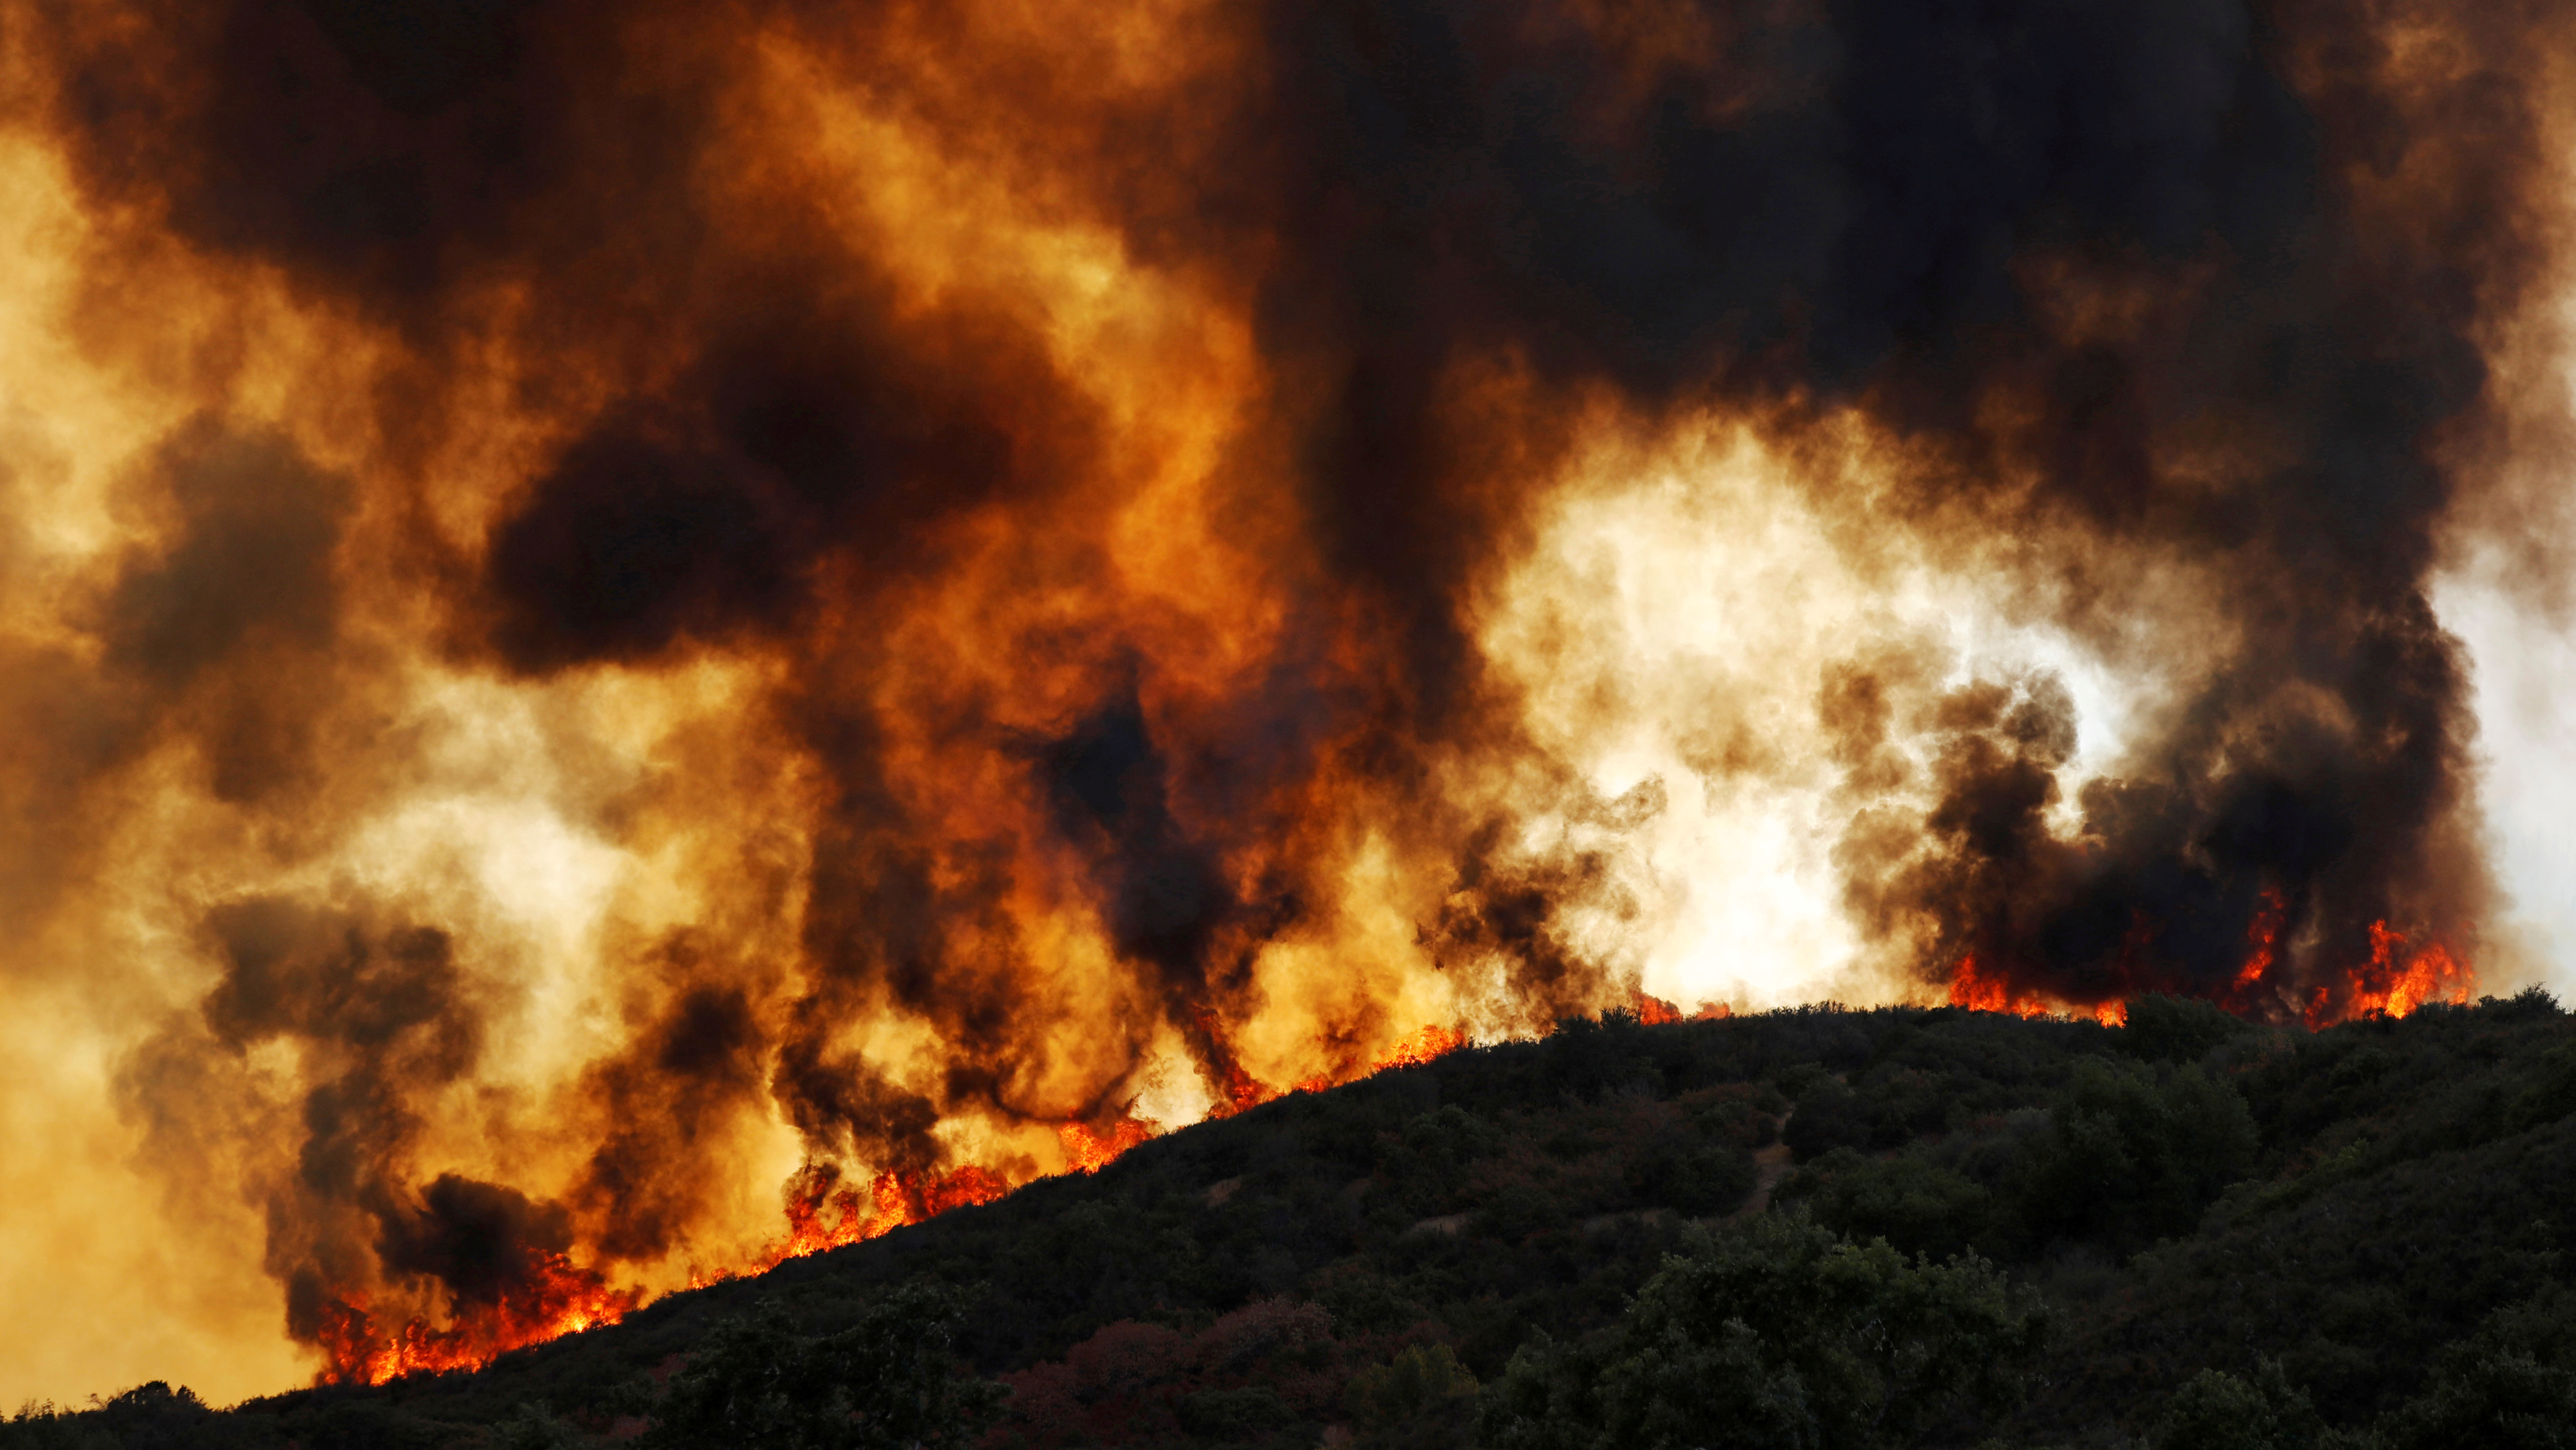 Wind-driven flames roll over a hill towards homes during the River Fire (Mendocino Complex) near Lakeport, California, U.S. August 2, 2018.